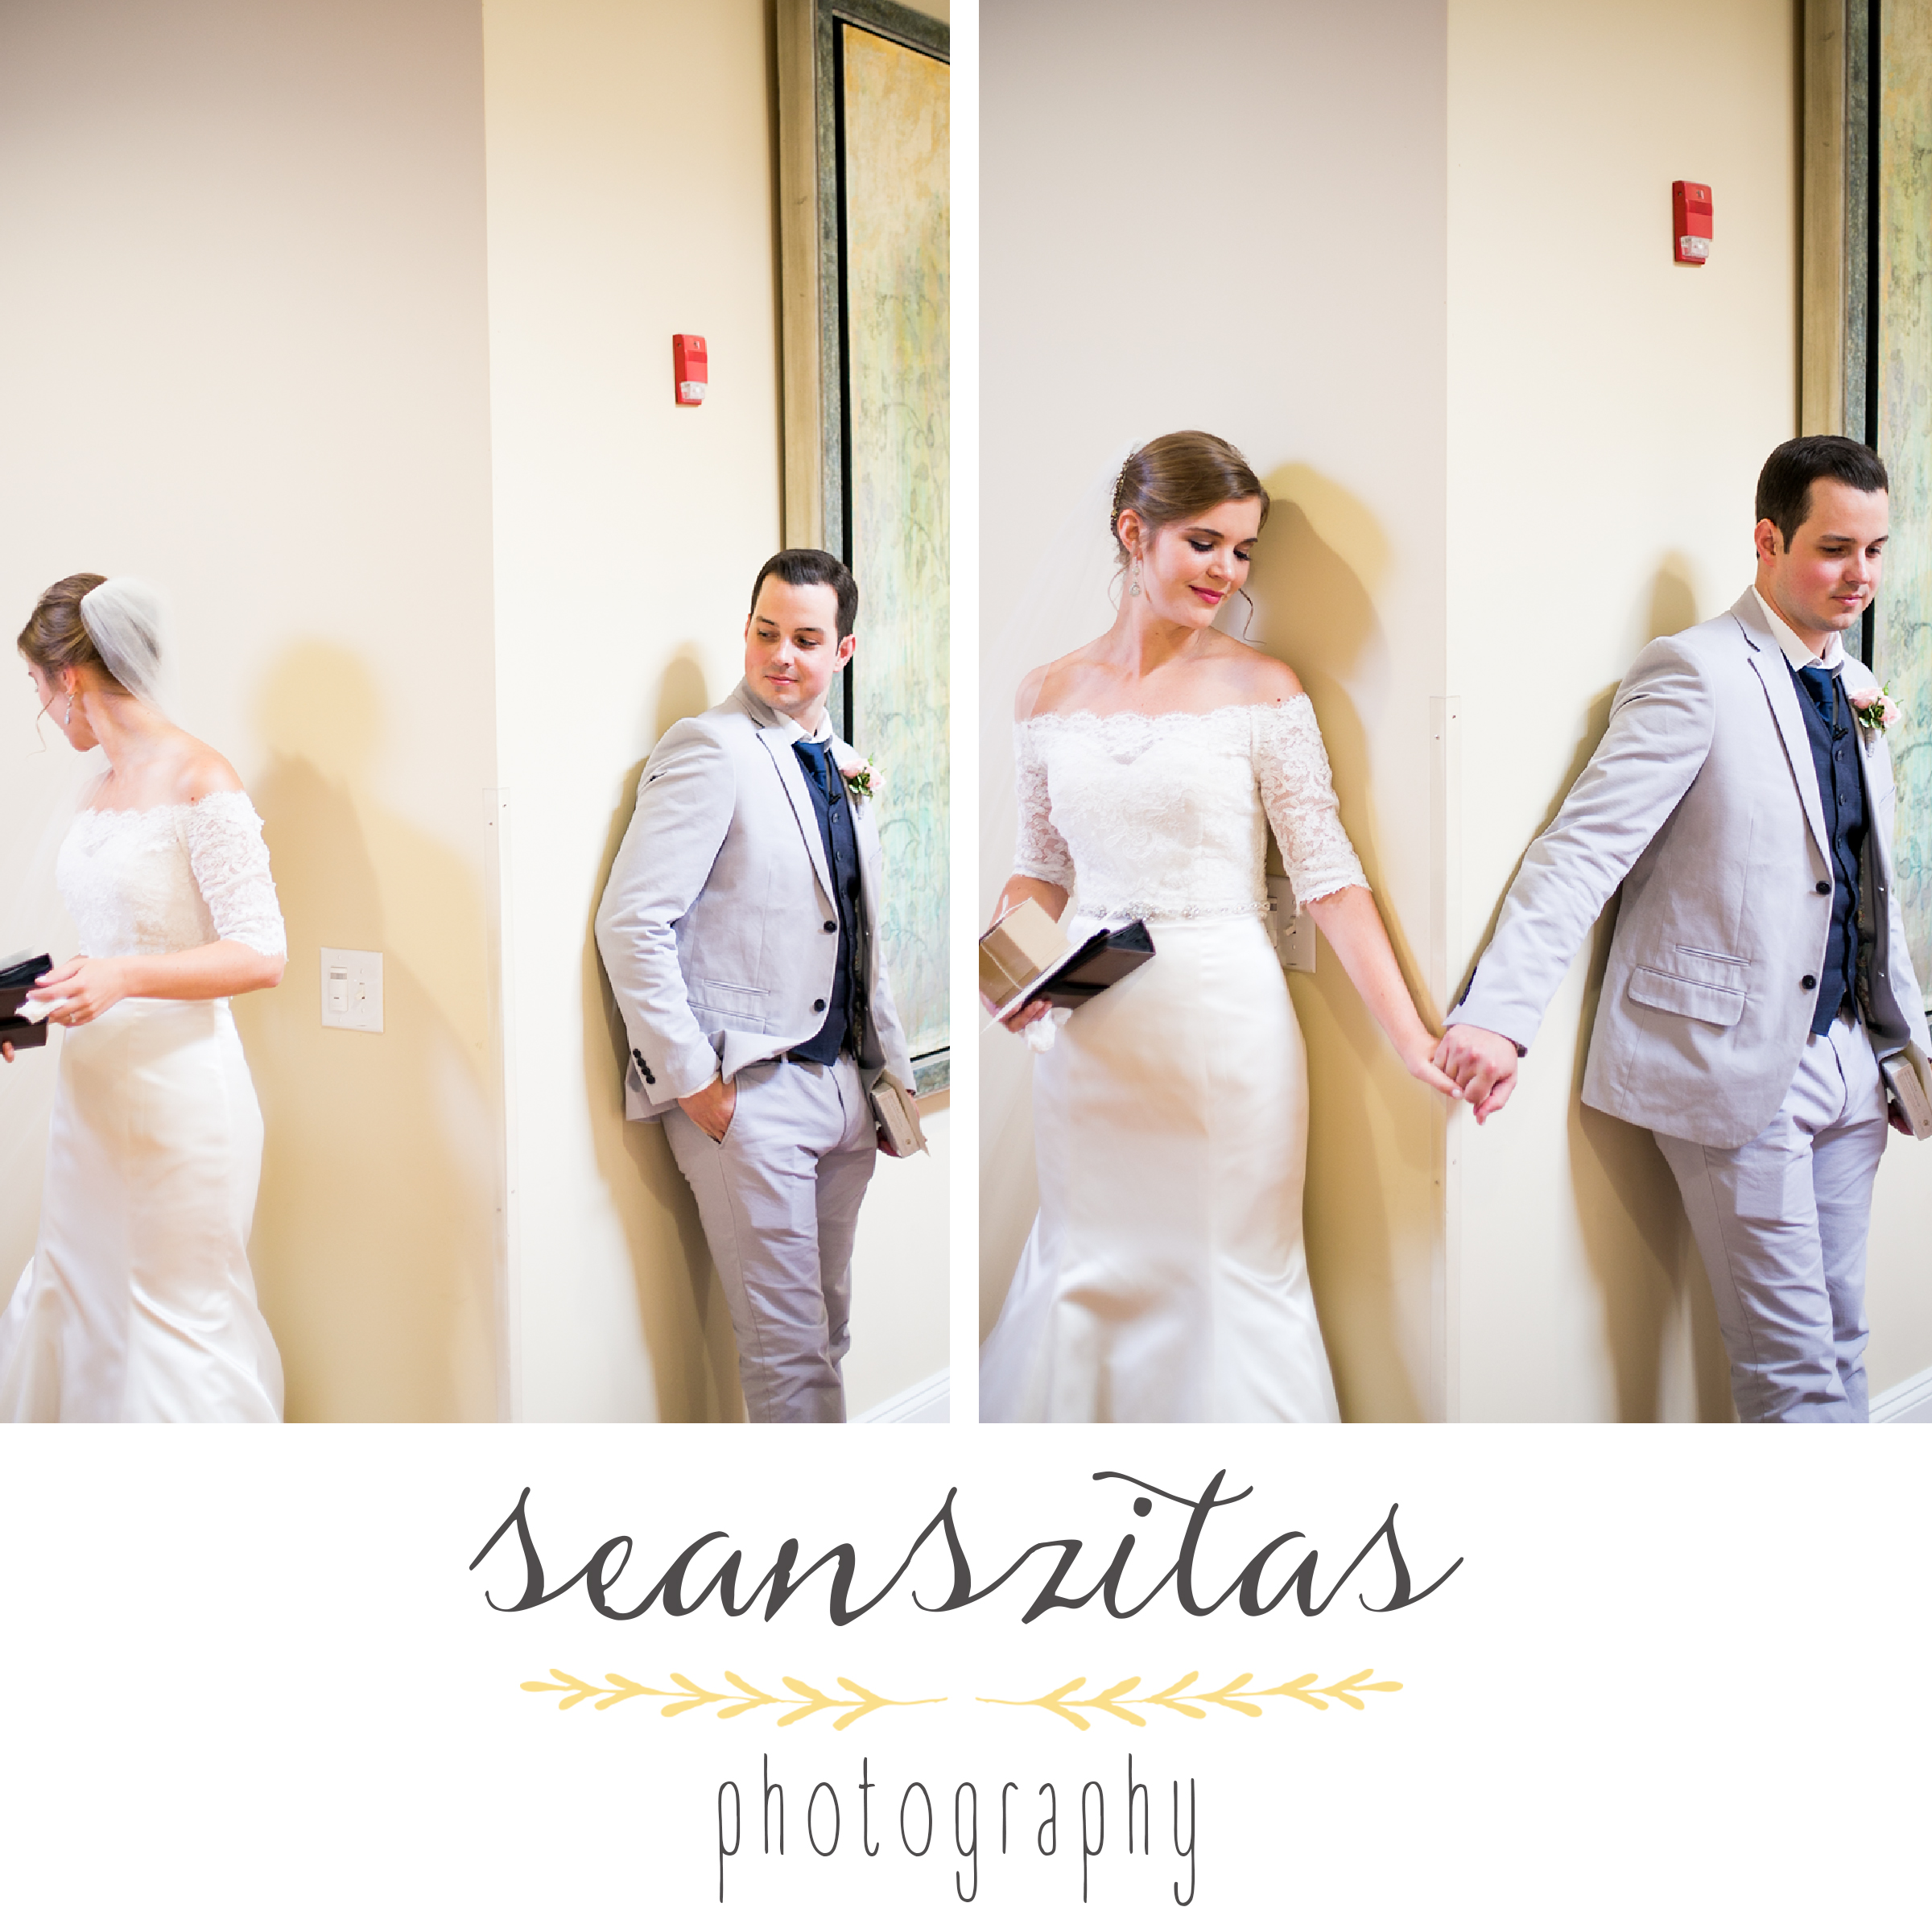 sean szitas photography wedding north carolina durham greensboro